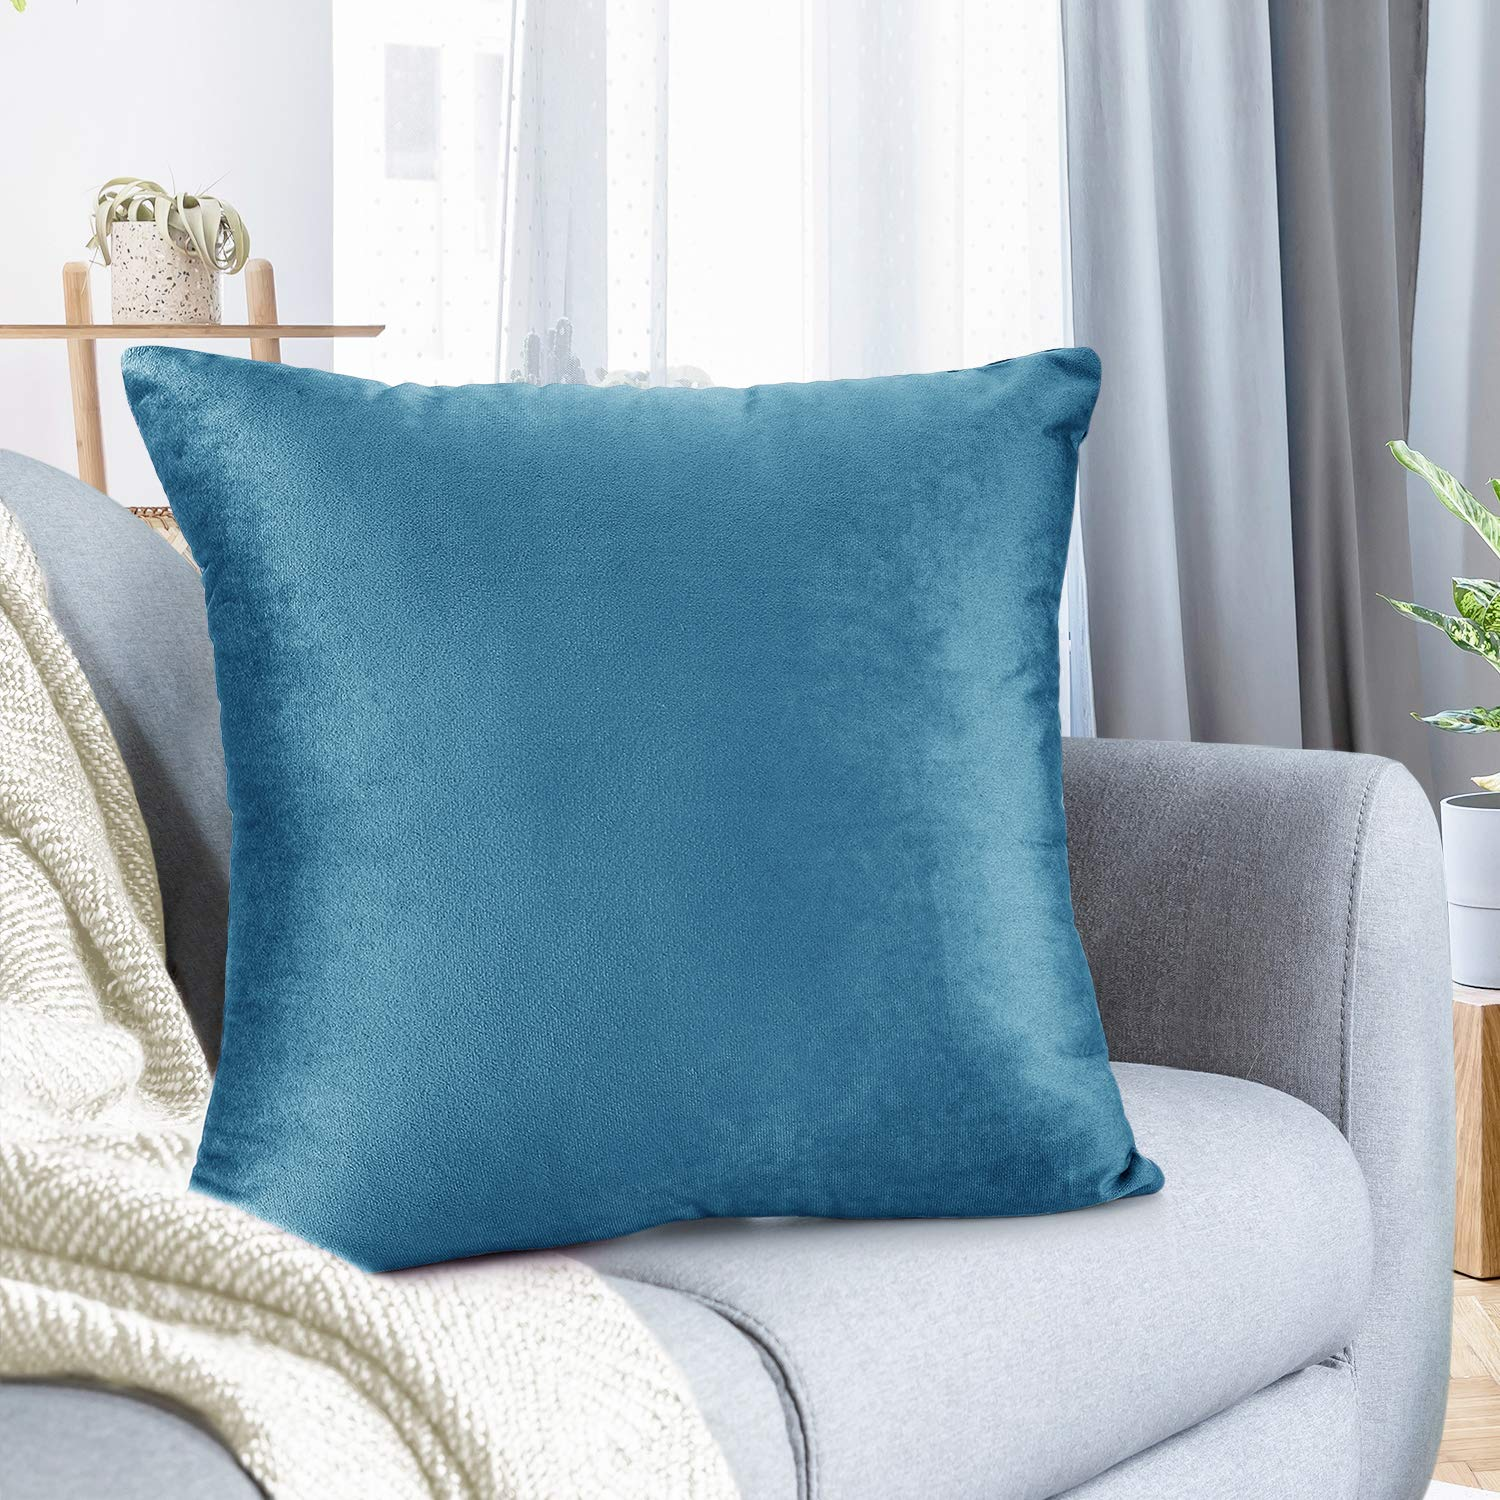 "Nestl Bedding Throw Pillow Cover 24"" x 24"" Soft Square Decorative Throw Pillow Covers Cozy Velvet Cushion Case for Sofa Couch Bedroom - Blue Heaven"